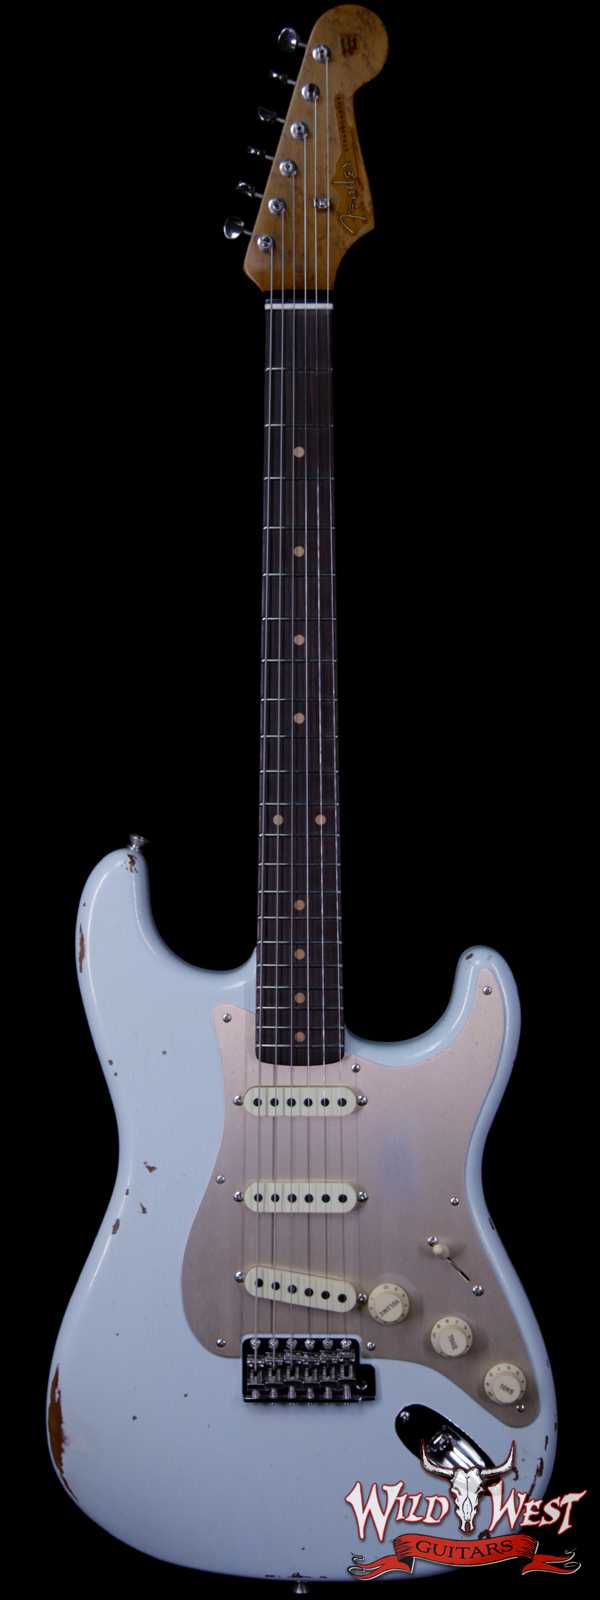 Fender Custom Shop Roasted 1960 Stratocaster Relic 3A Birdseye Neck 3A Rosewood Slab Board Sonic Blue